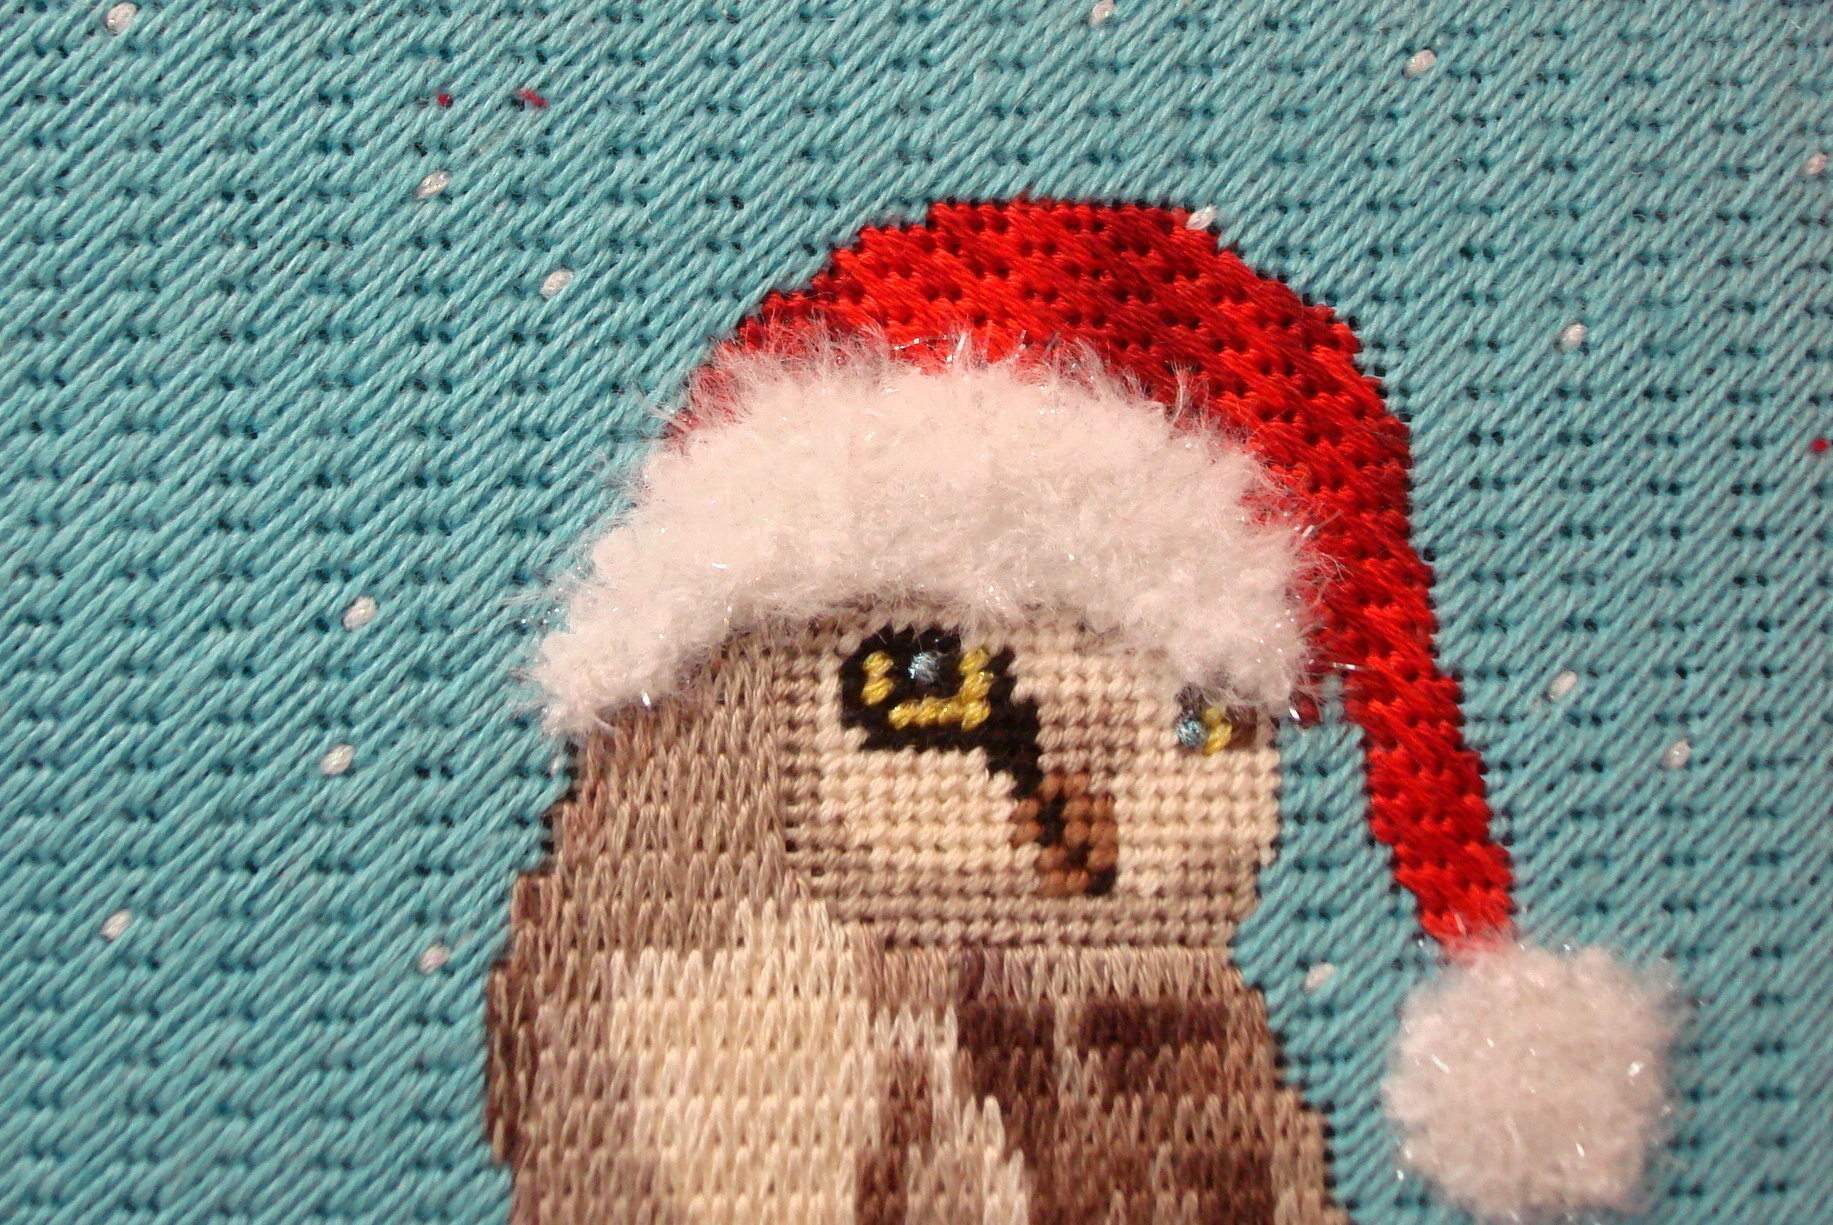 Christmas Owl  (handpainted needlepoint canvas by Scott Church CBK Needlepoint Collection)